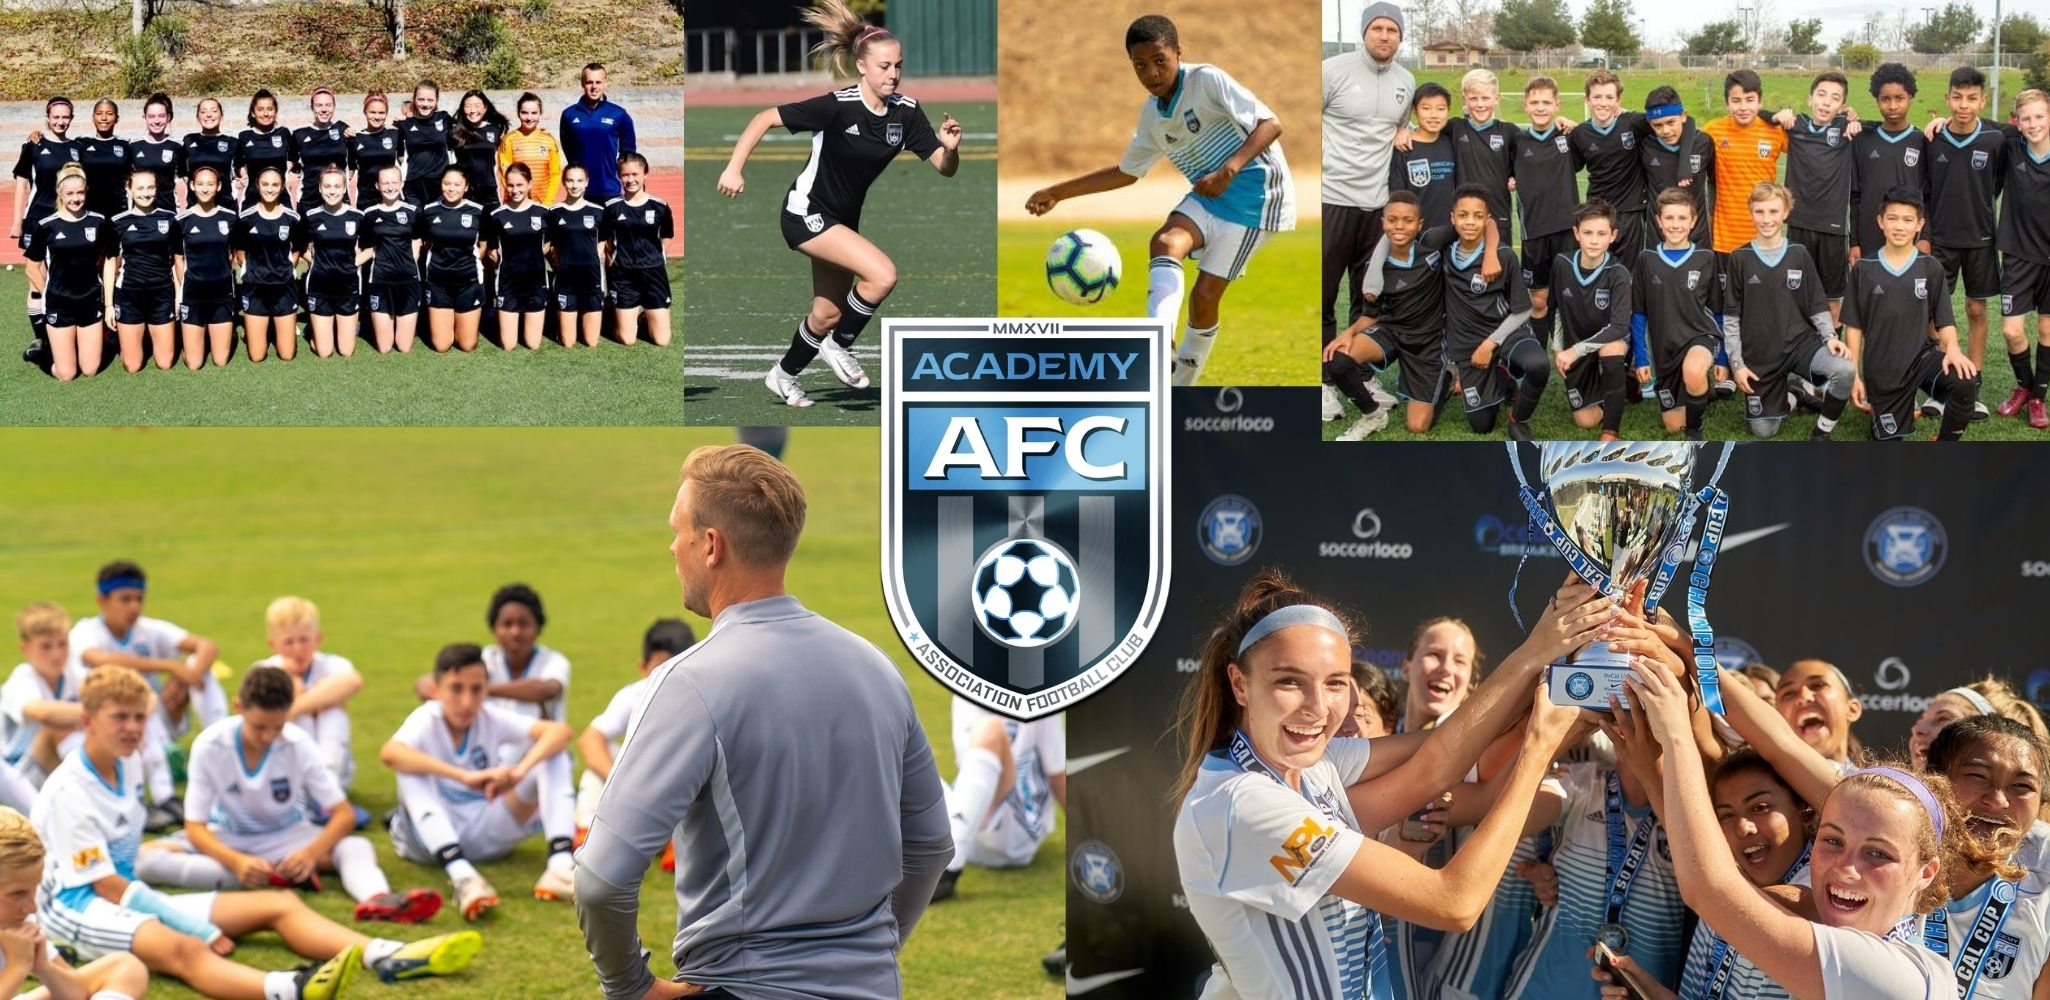 Association Football Club (AFC) Academy